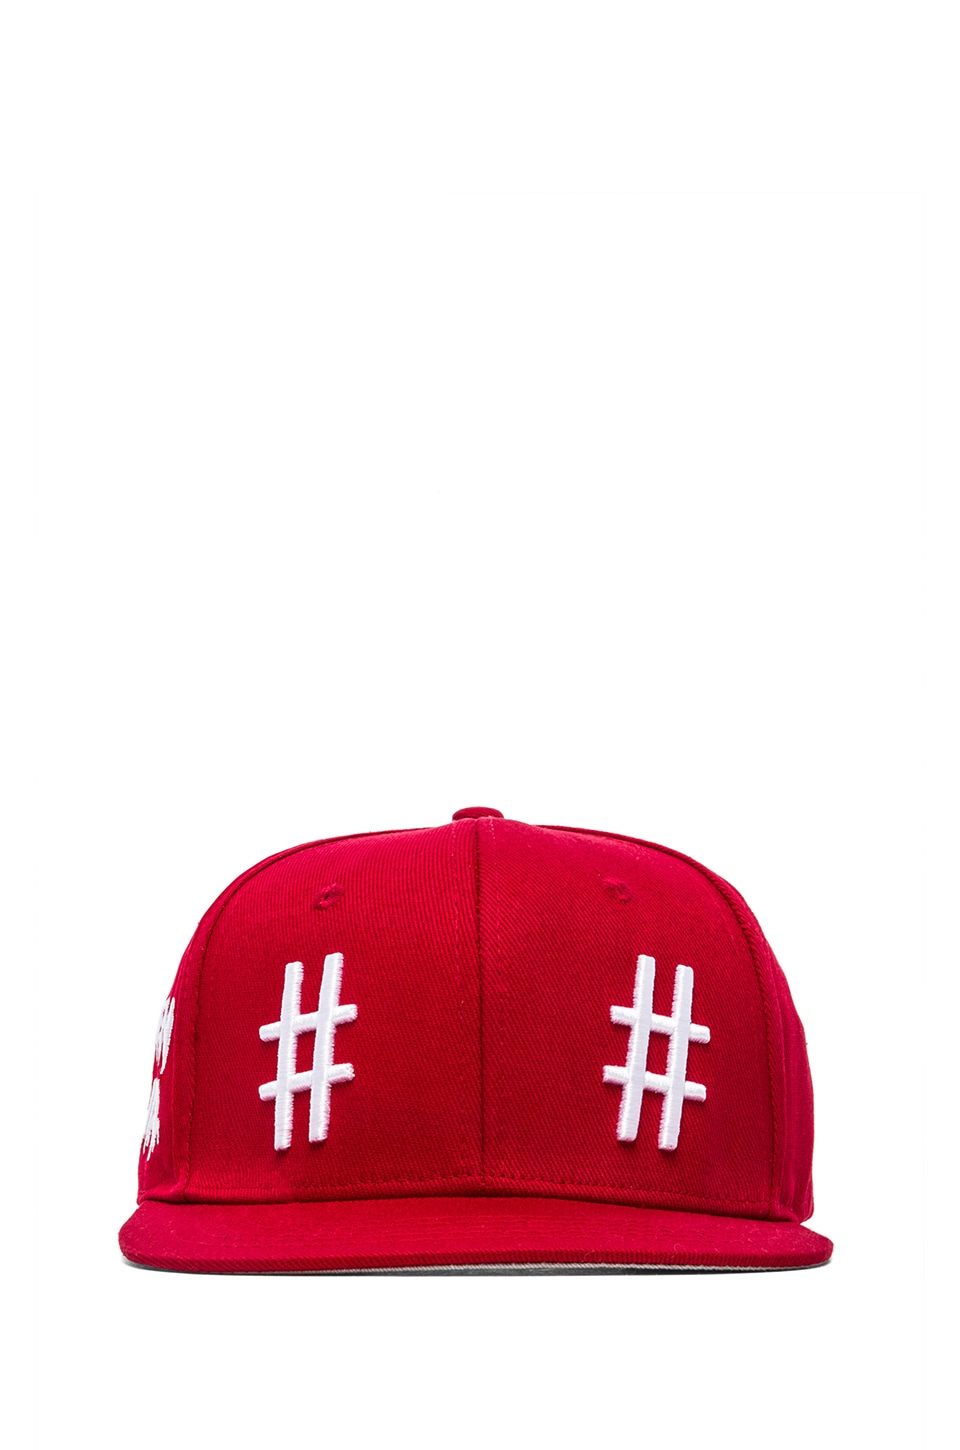 Been Trill Team Hat in Red and White